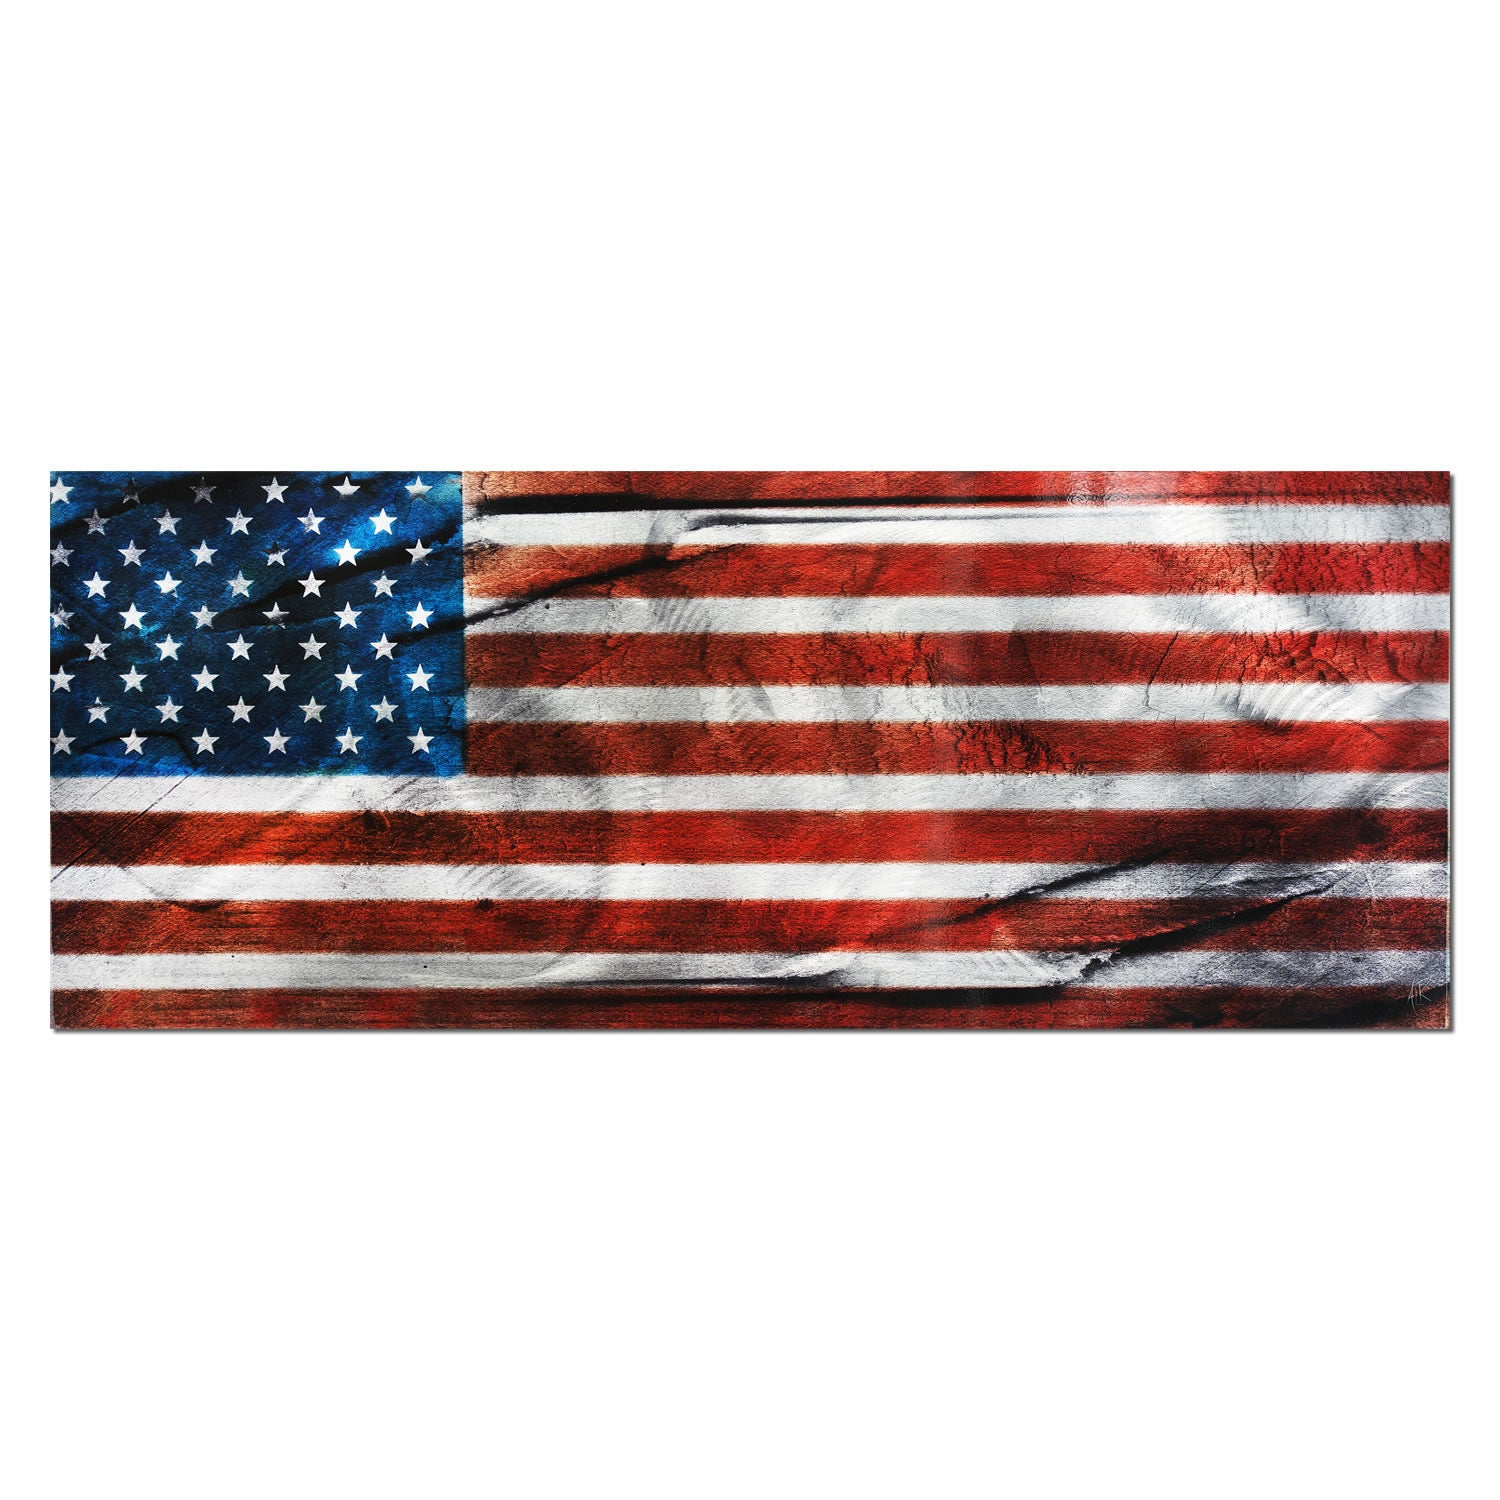 American Glory - Large Indoor/Outdoor Modern Metal Wall Art